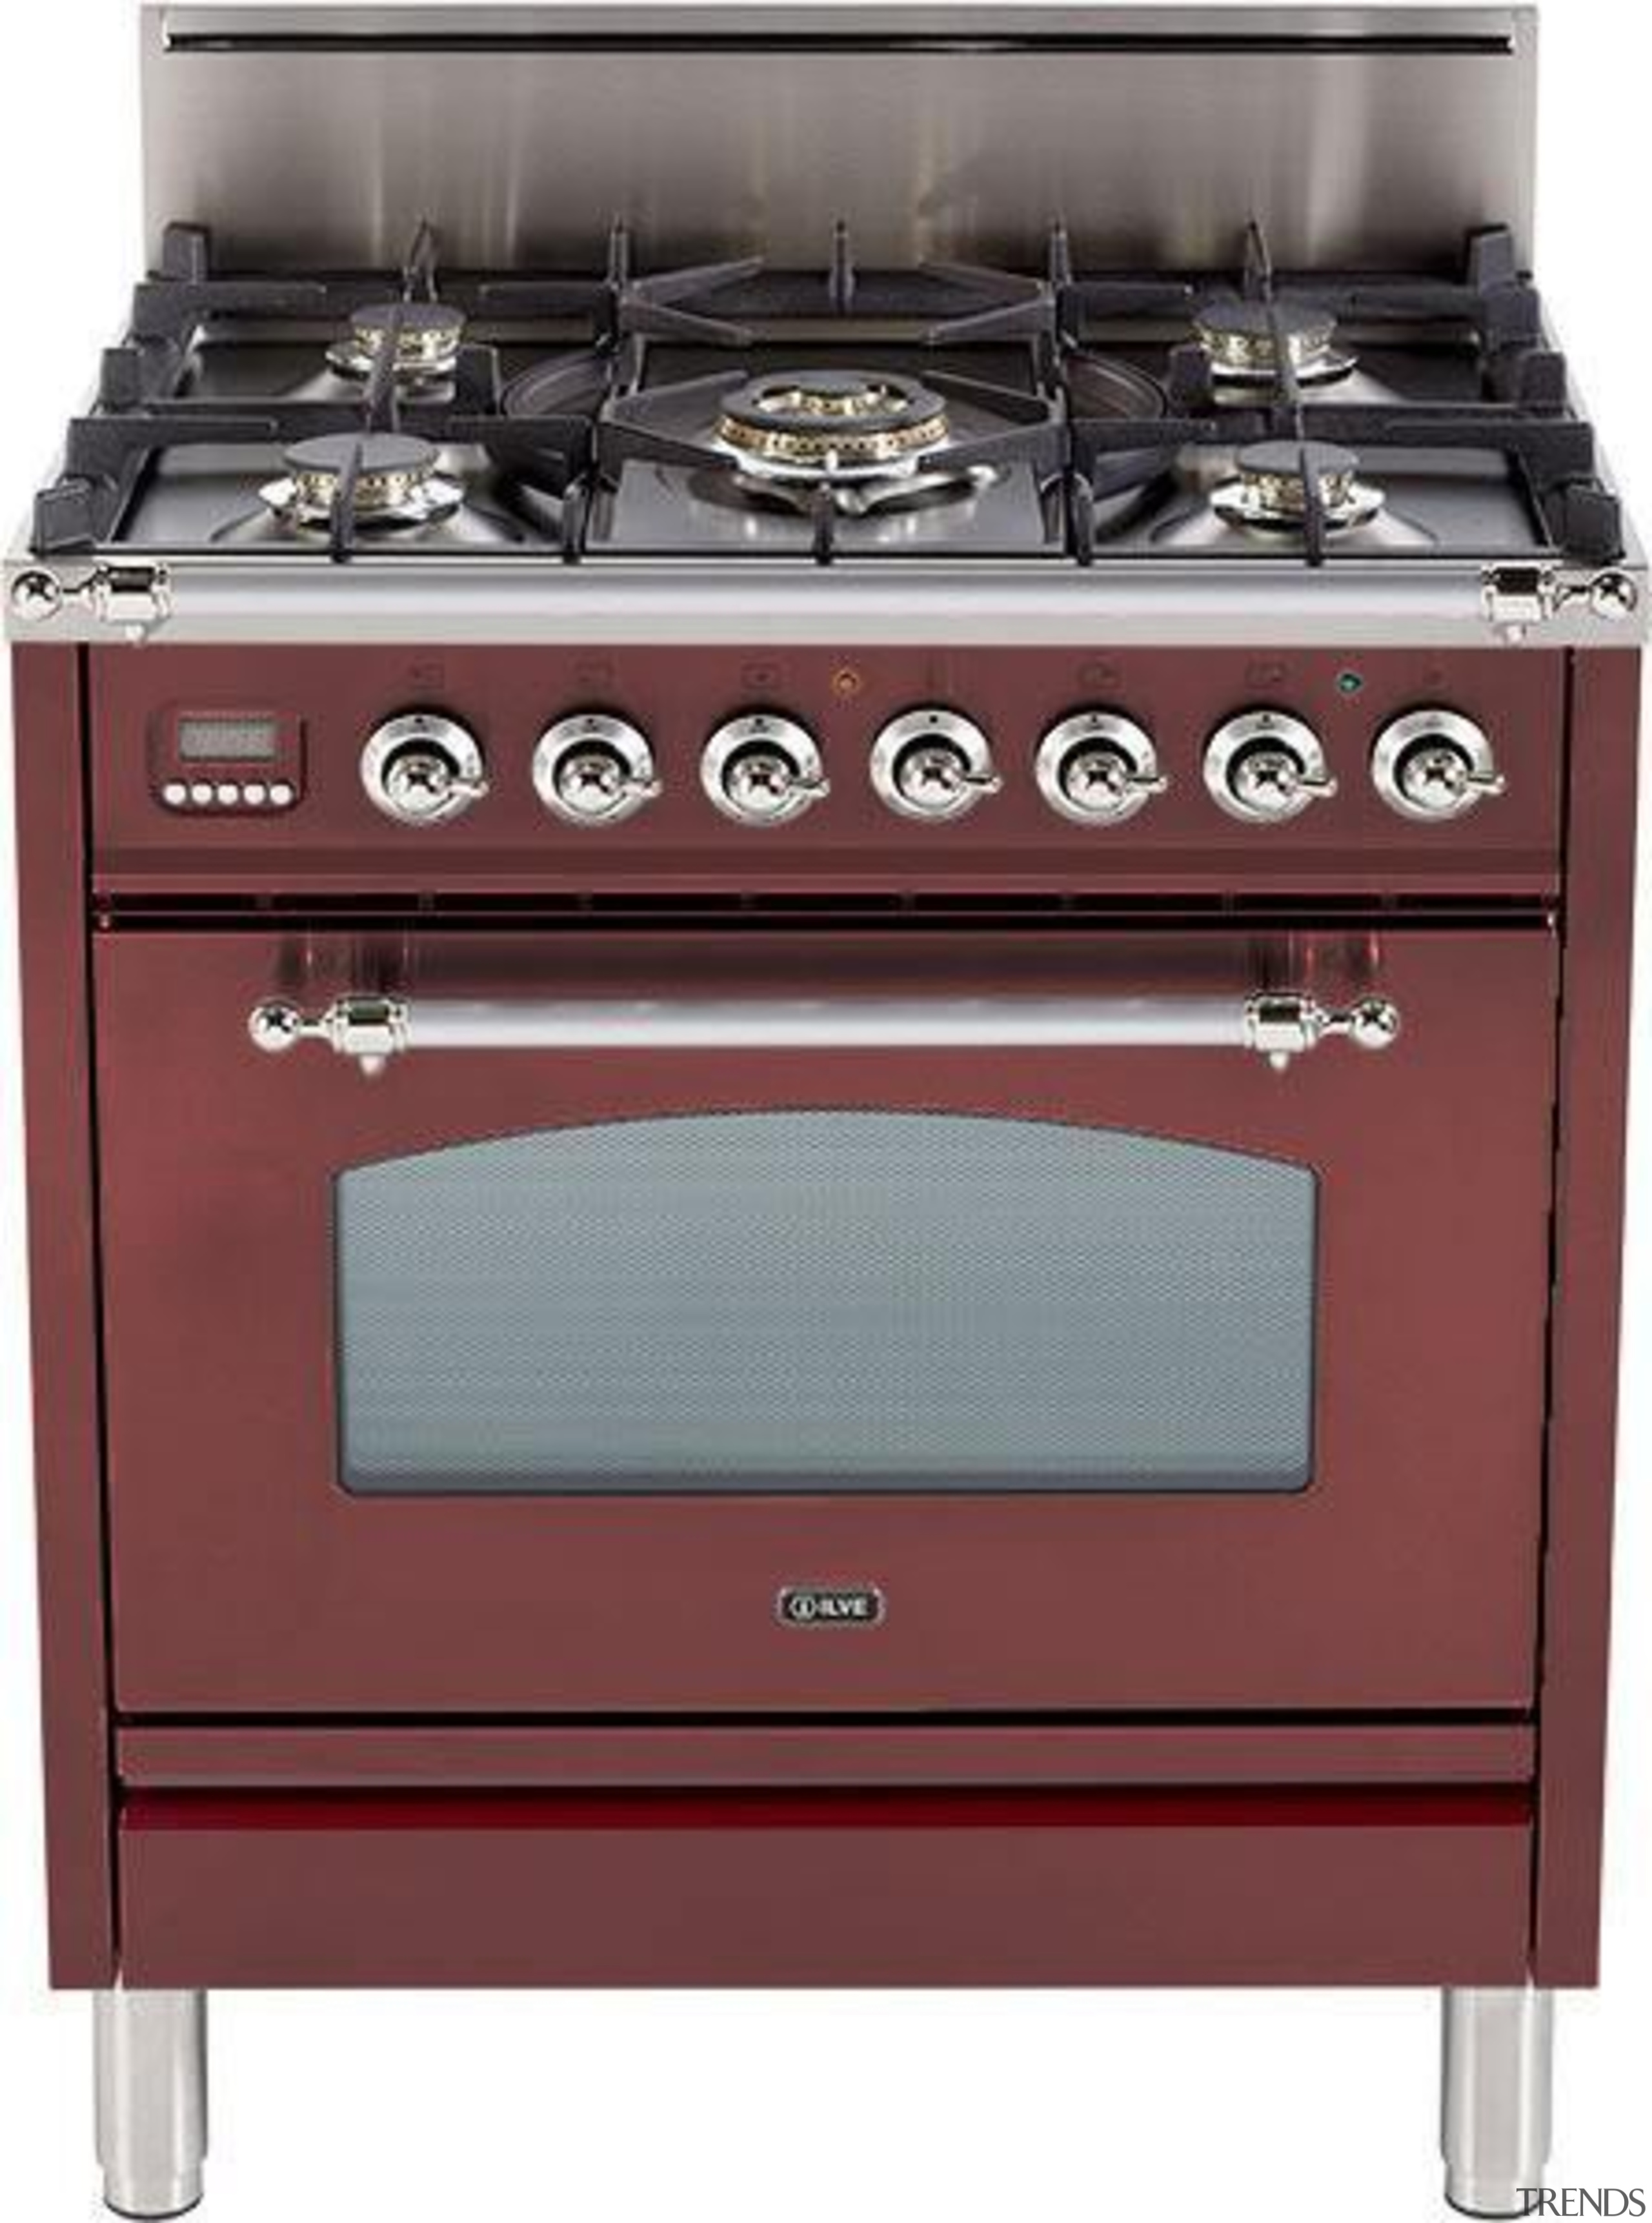 The Nostalgie series features many of the ILVE electronic instrument, gas stove, home appliance, kitchen appliance, kitchen stove, major appliance, product, red